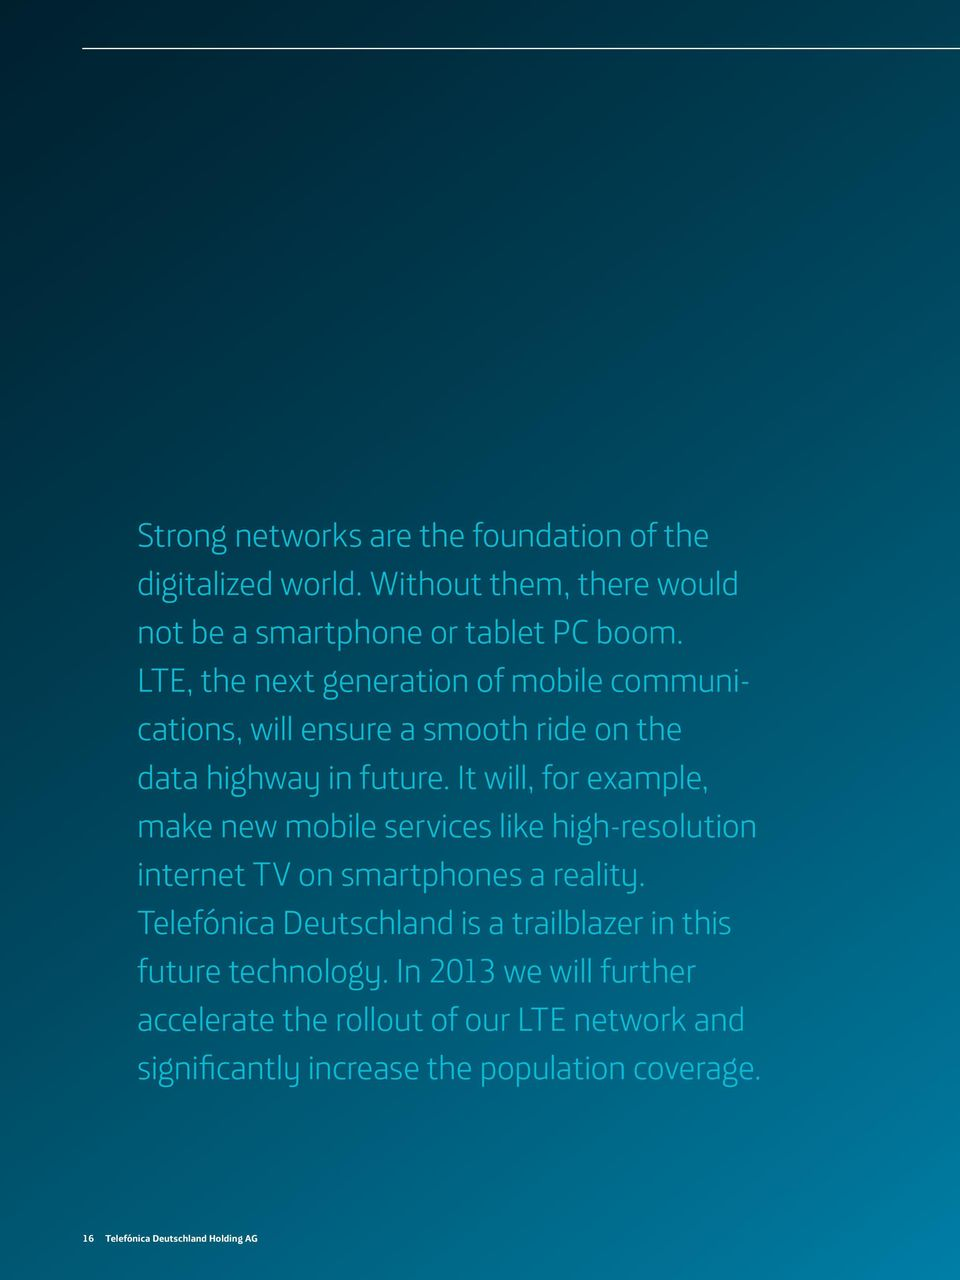 It will, for example, make new mobile services like high-resolution internet TV on smartphones a reality.